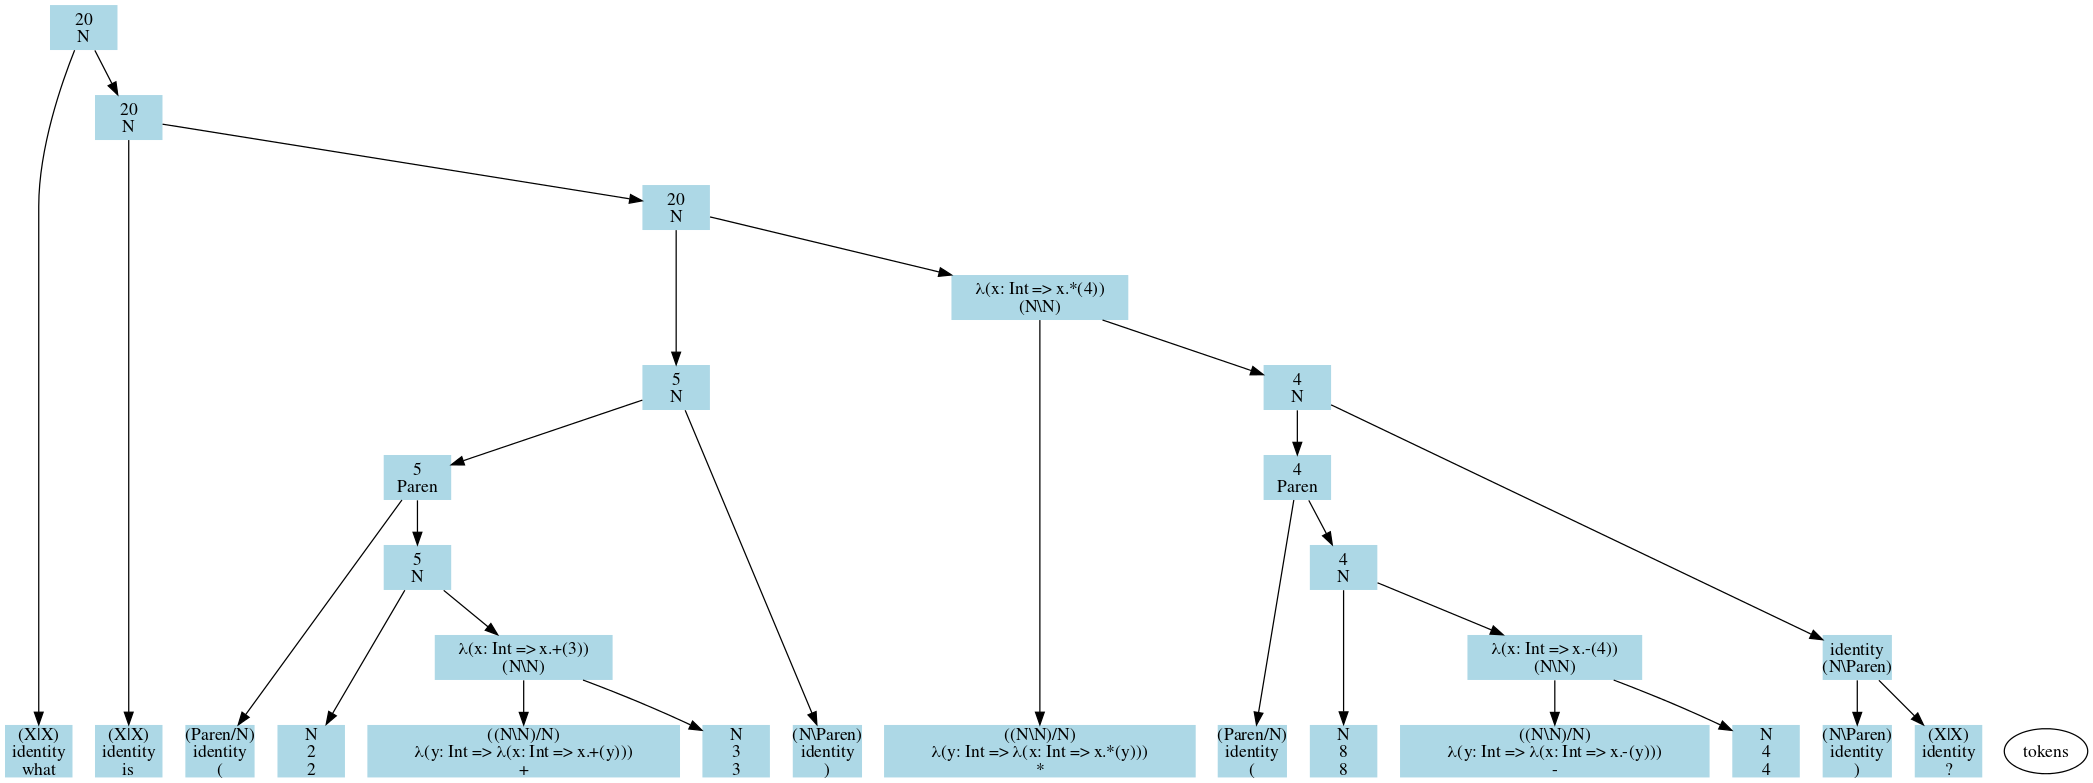 An example semantic parse tree